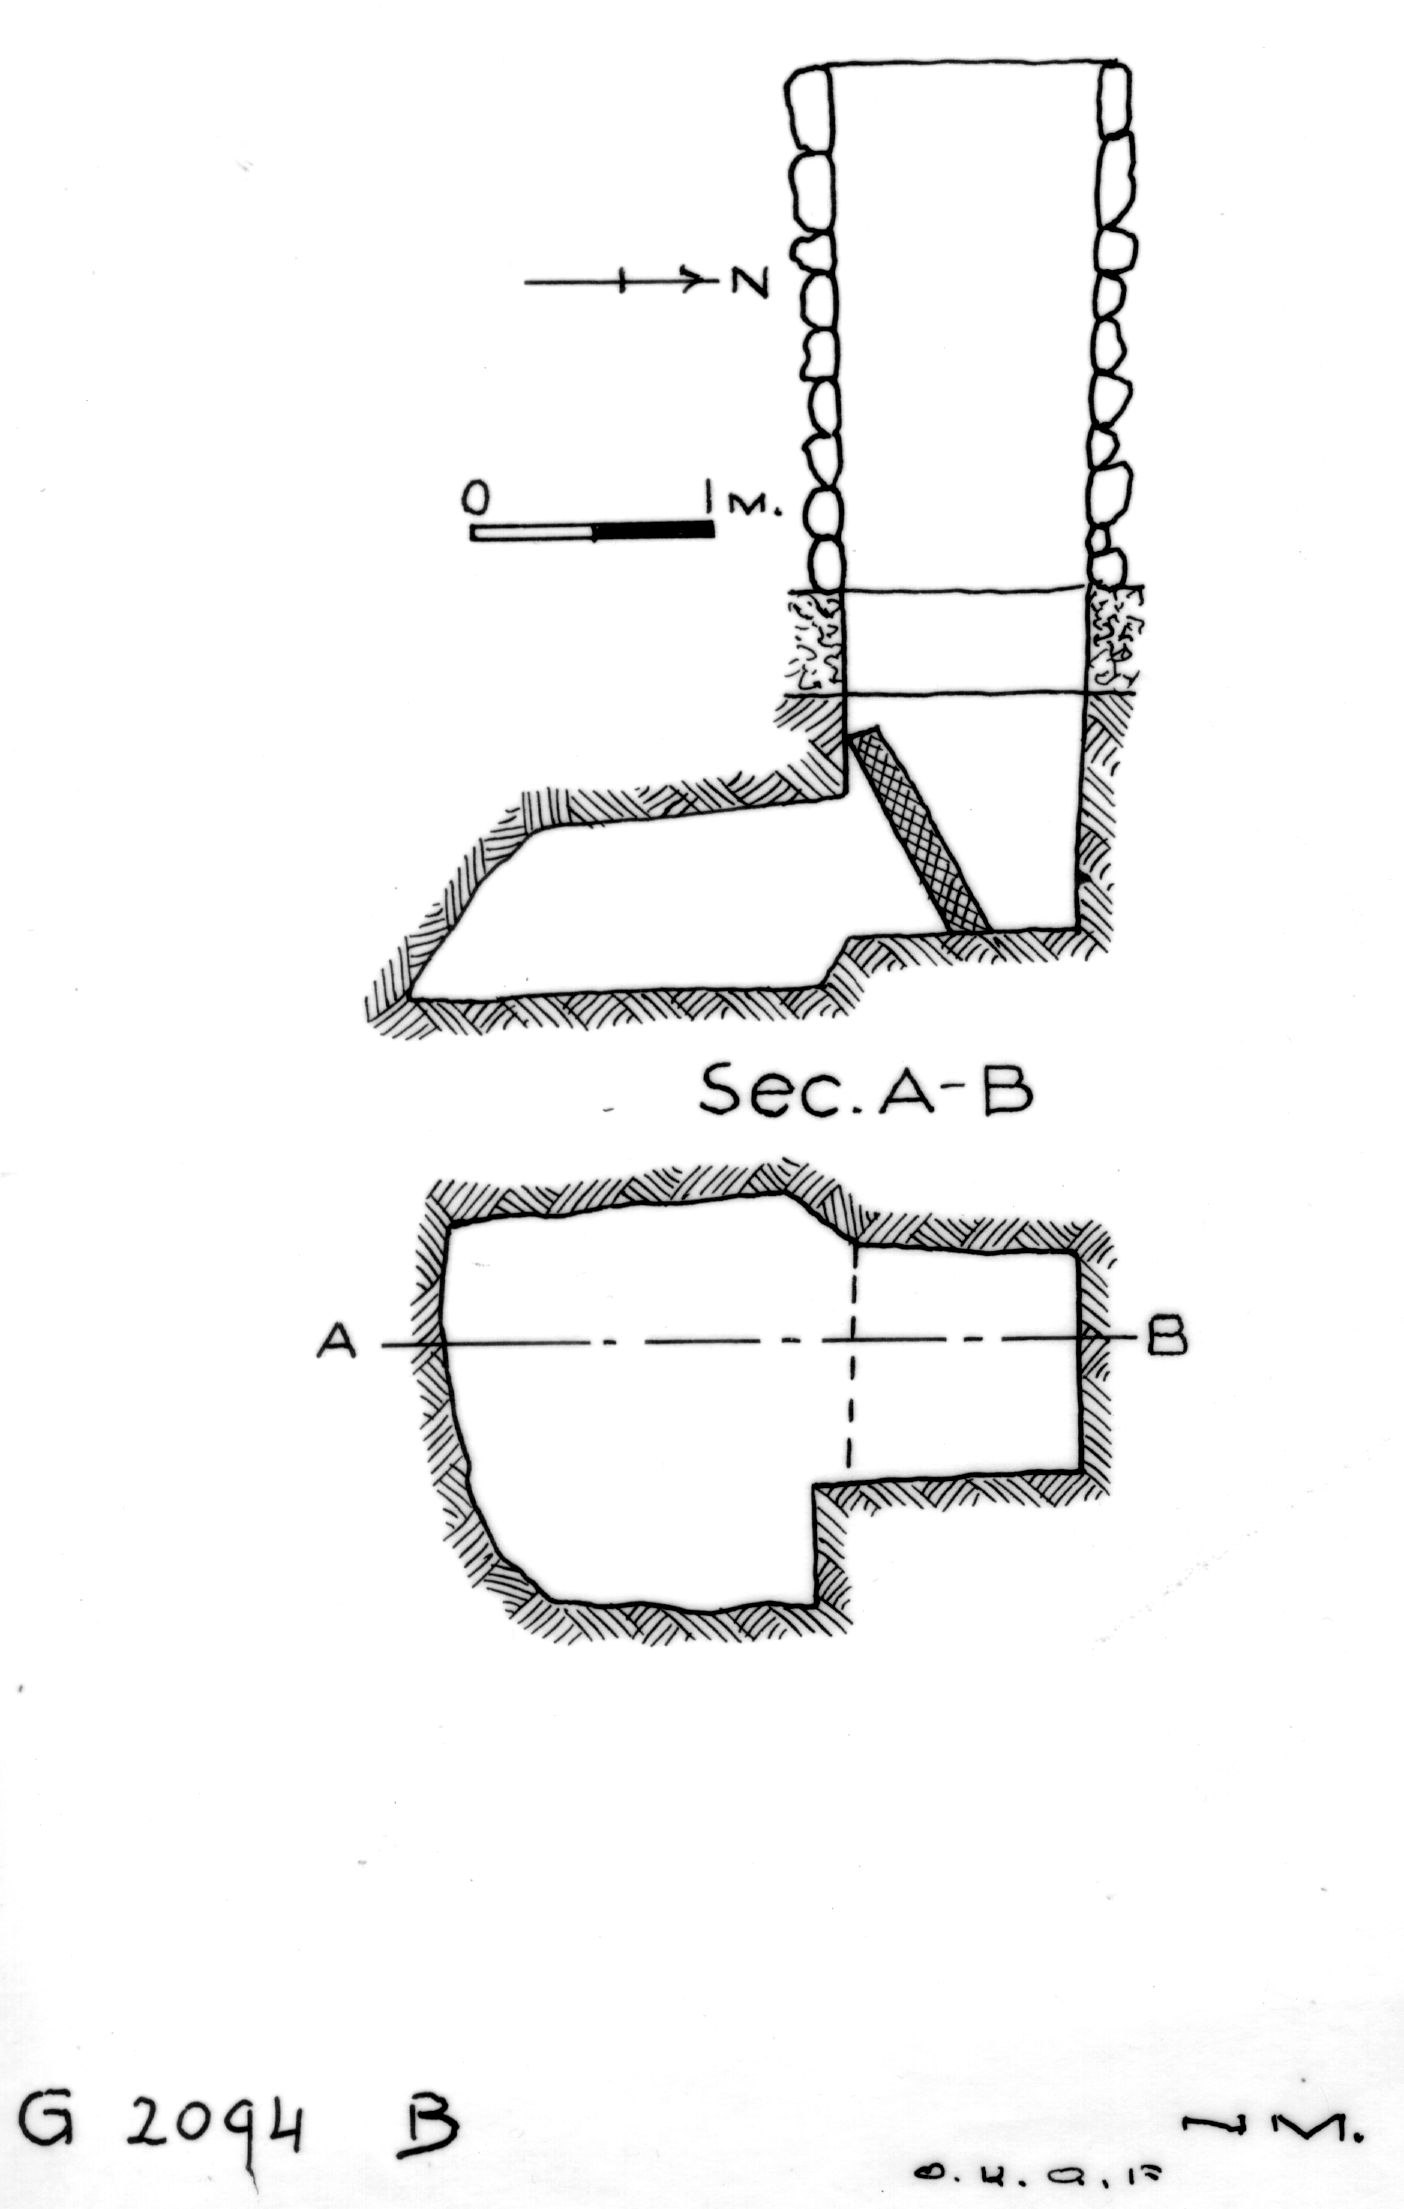 Maps and plans: G 2094, Shaft B